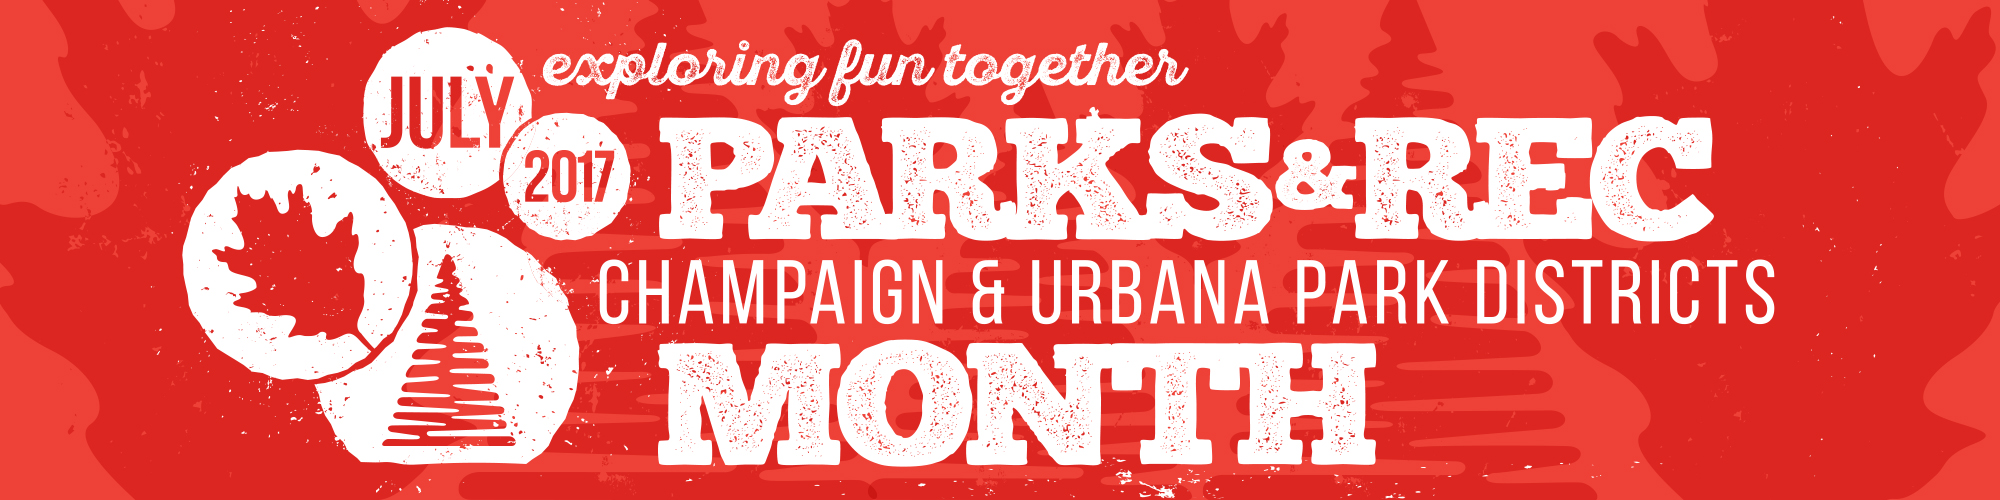 Parks-and-Rec-Month-2017_2000x500_-Sliderr-Graphic